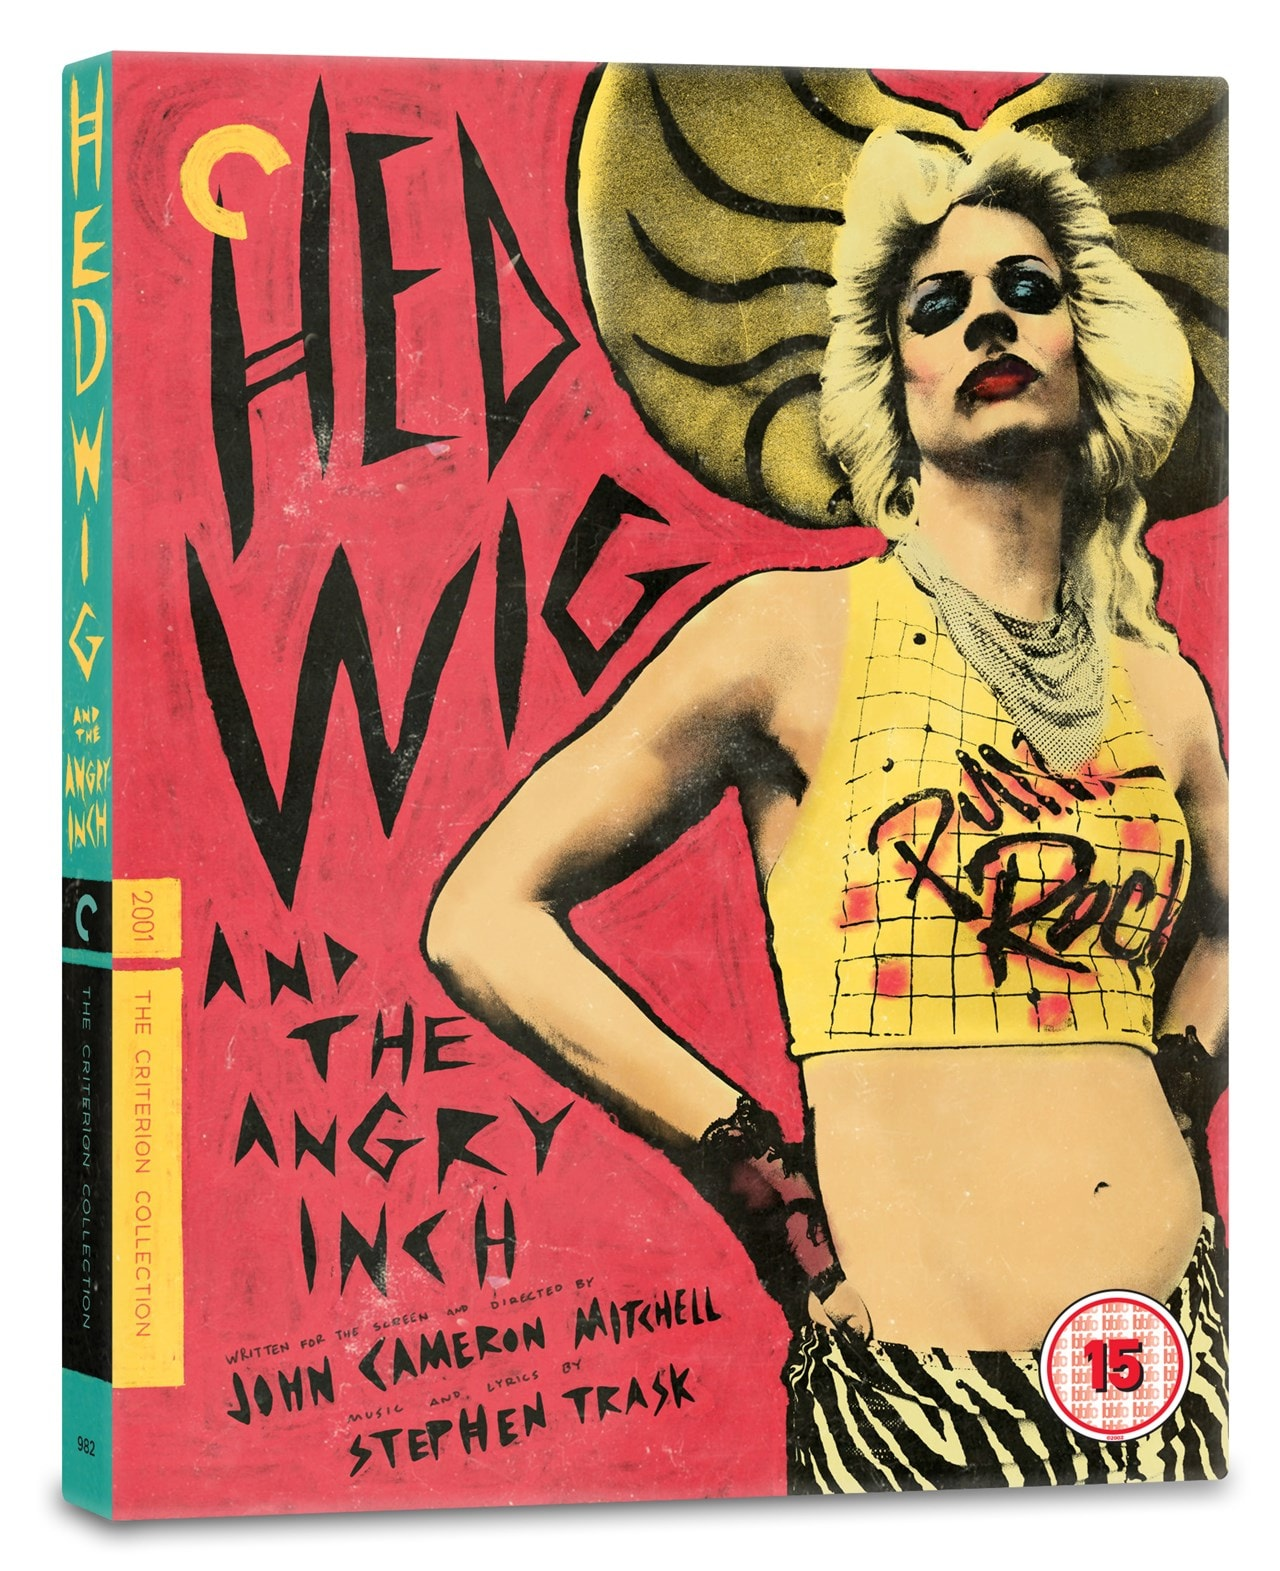 Hedwig and the Angry Inch - The Criterion Collection - 2